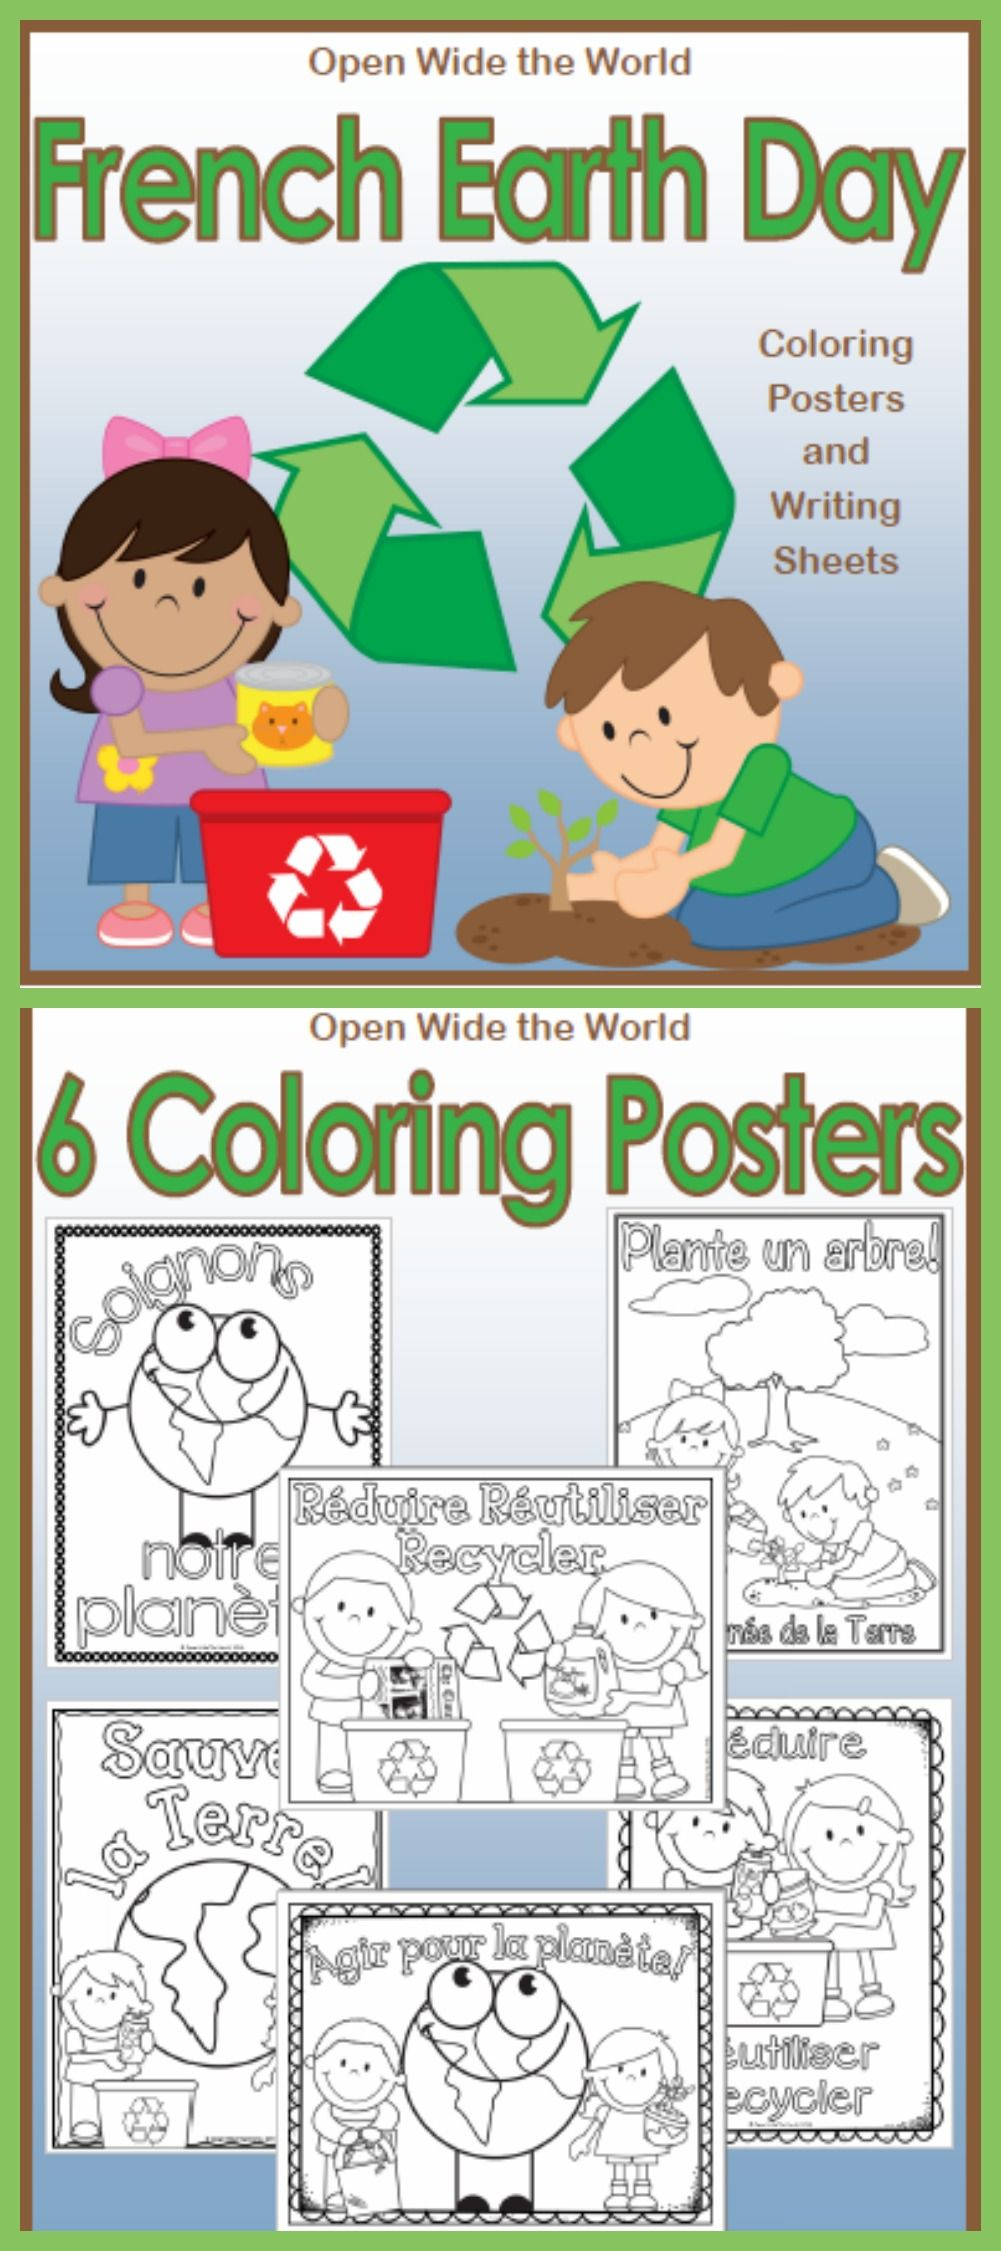 French Earth Day Coloring Posters & Writing Sheets - la journée de ...